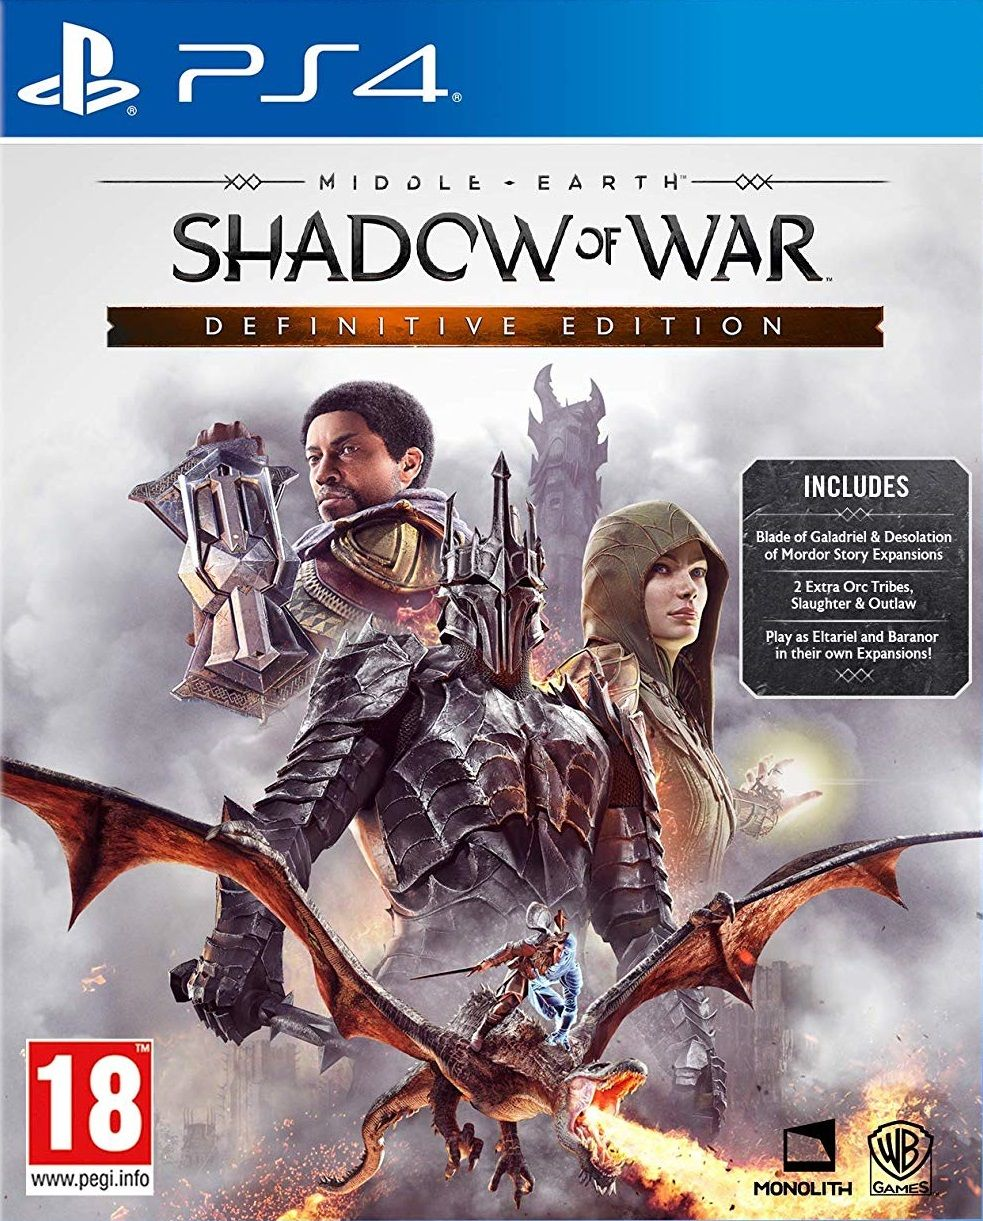 Middle-earth: Shadow of War - Definitive Edition (PS4) - 1